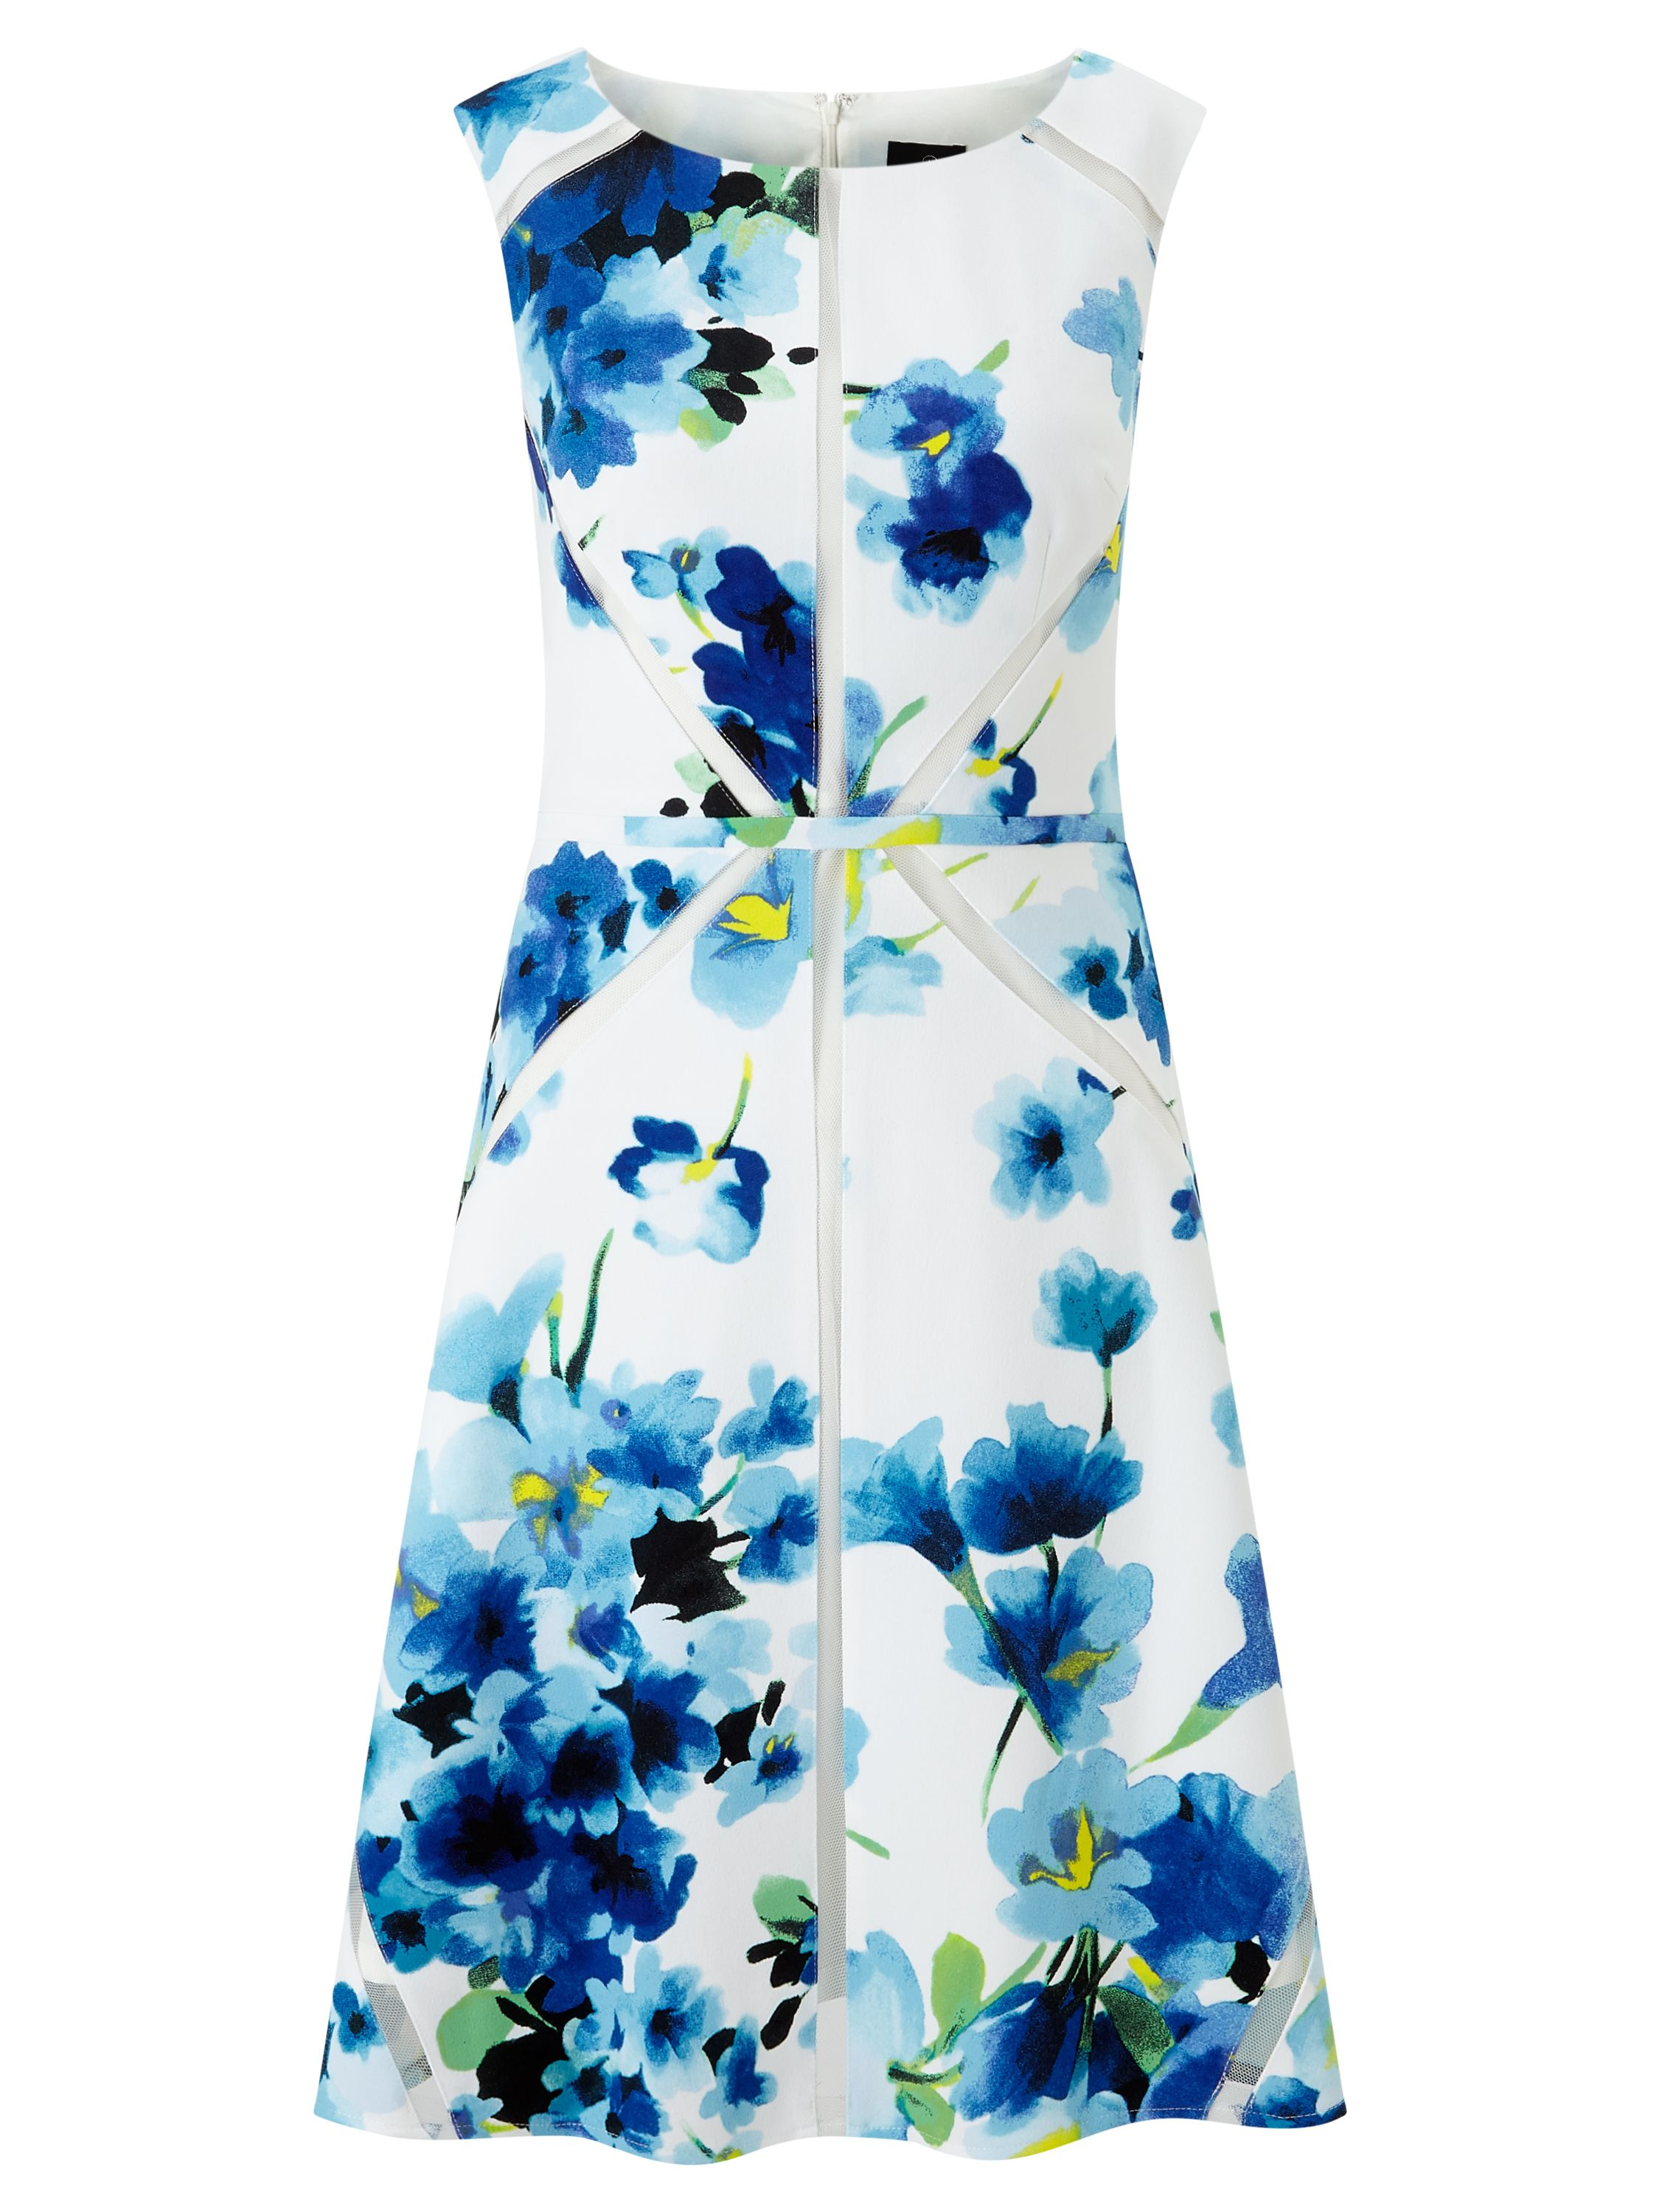 Adrianna Papell Fit and Flare Floral Dress, Blue